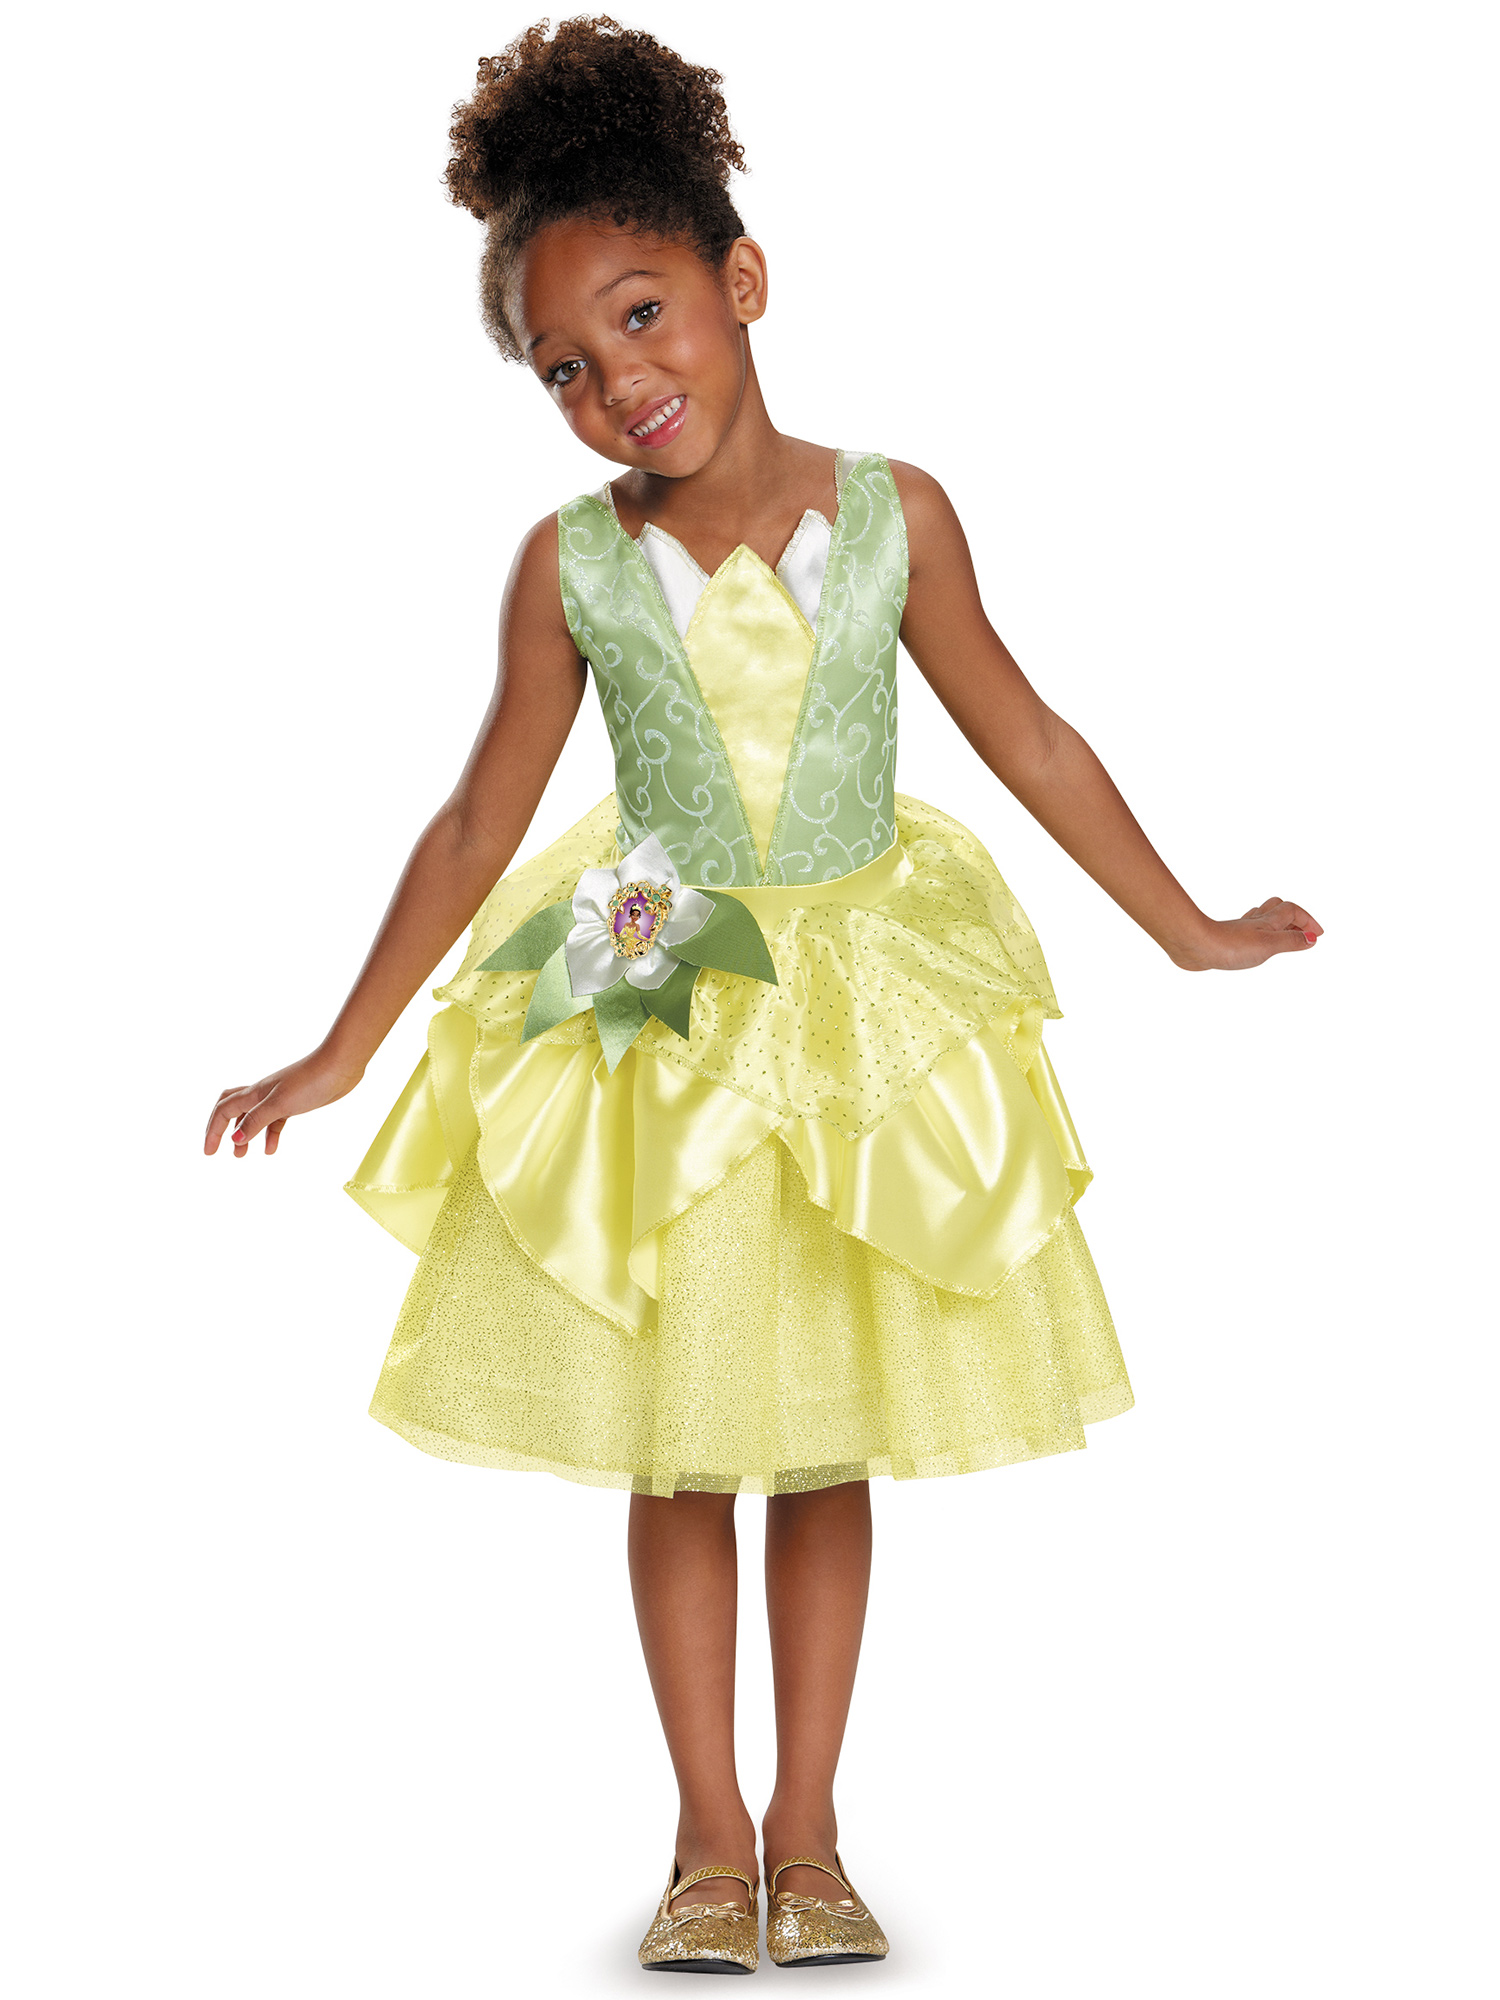 Disney's The Princess and the Frog Tiana Classic Costume for Kids DI11020-S